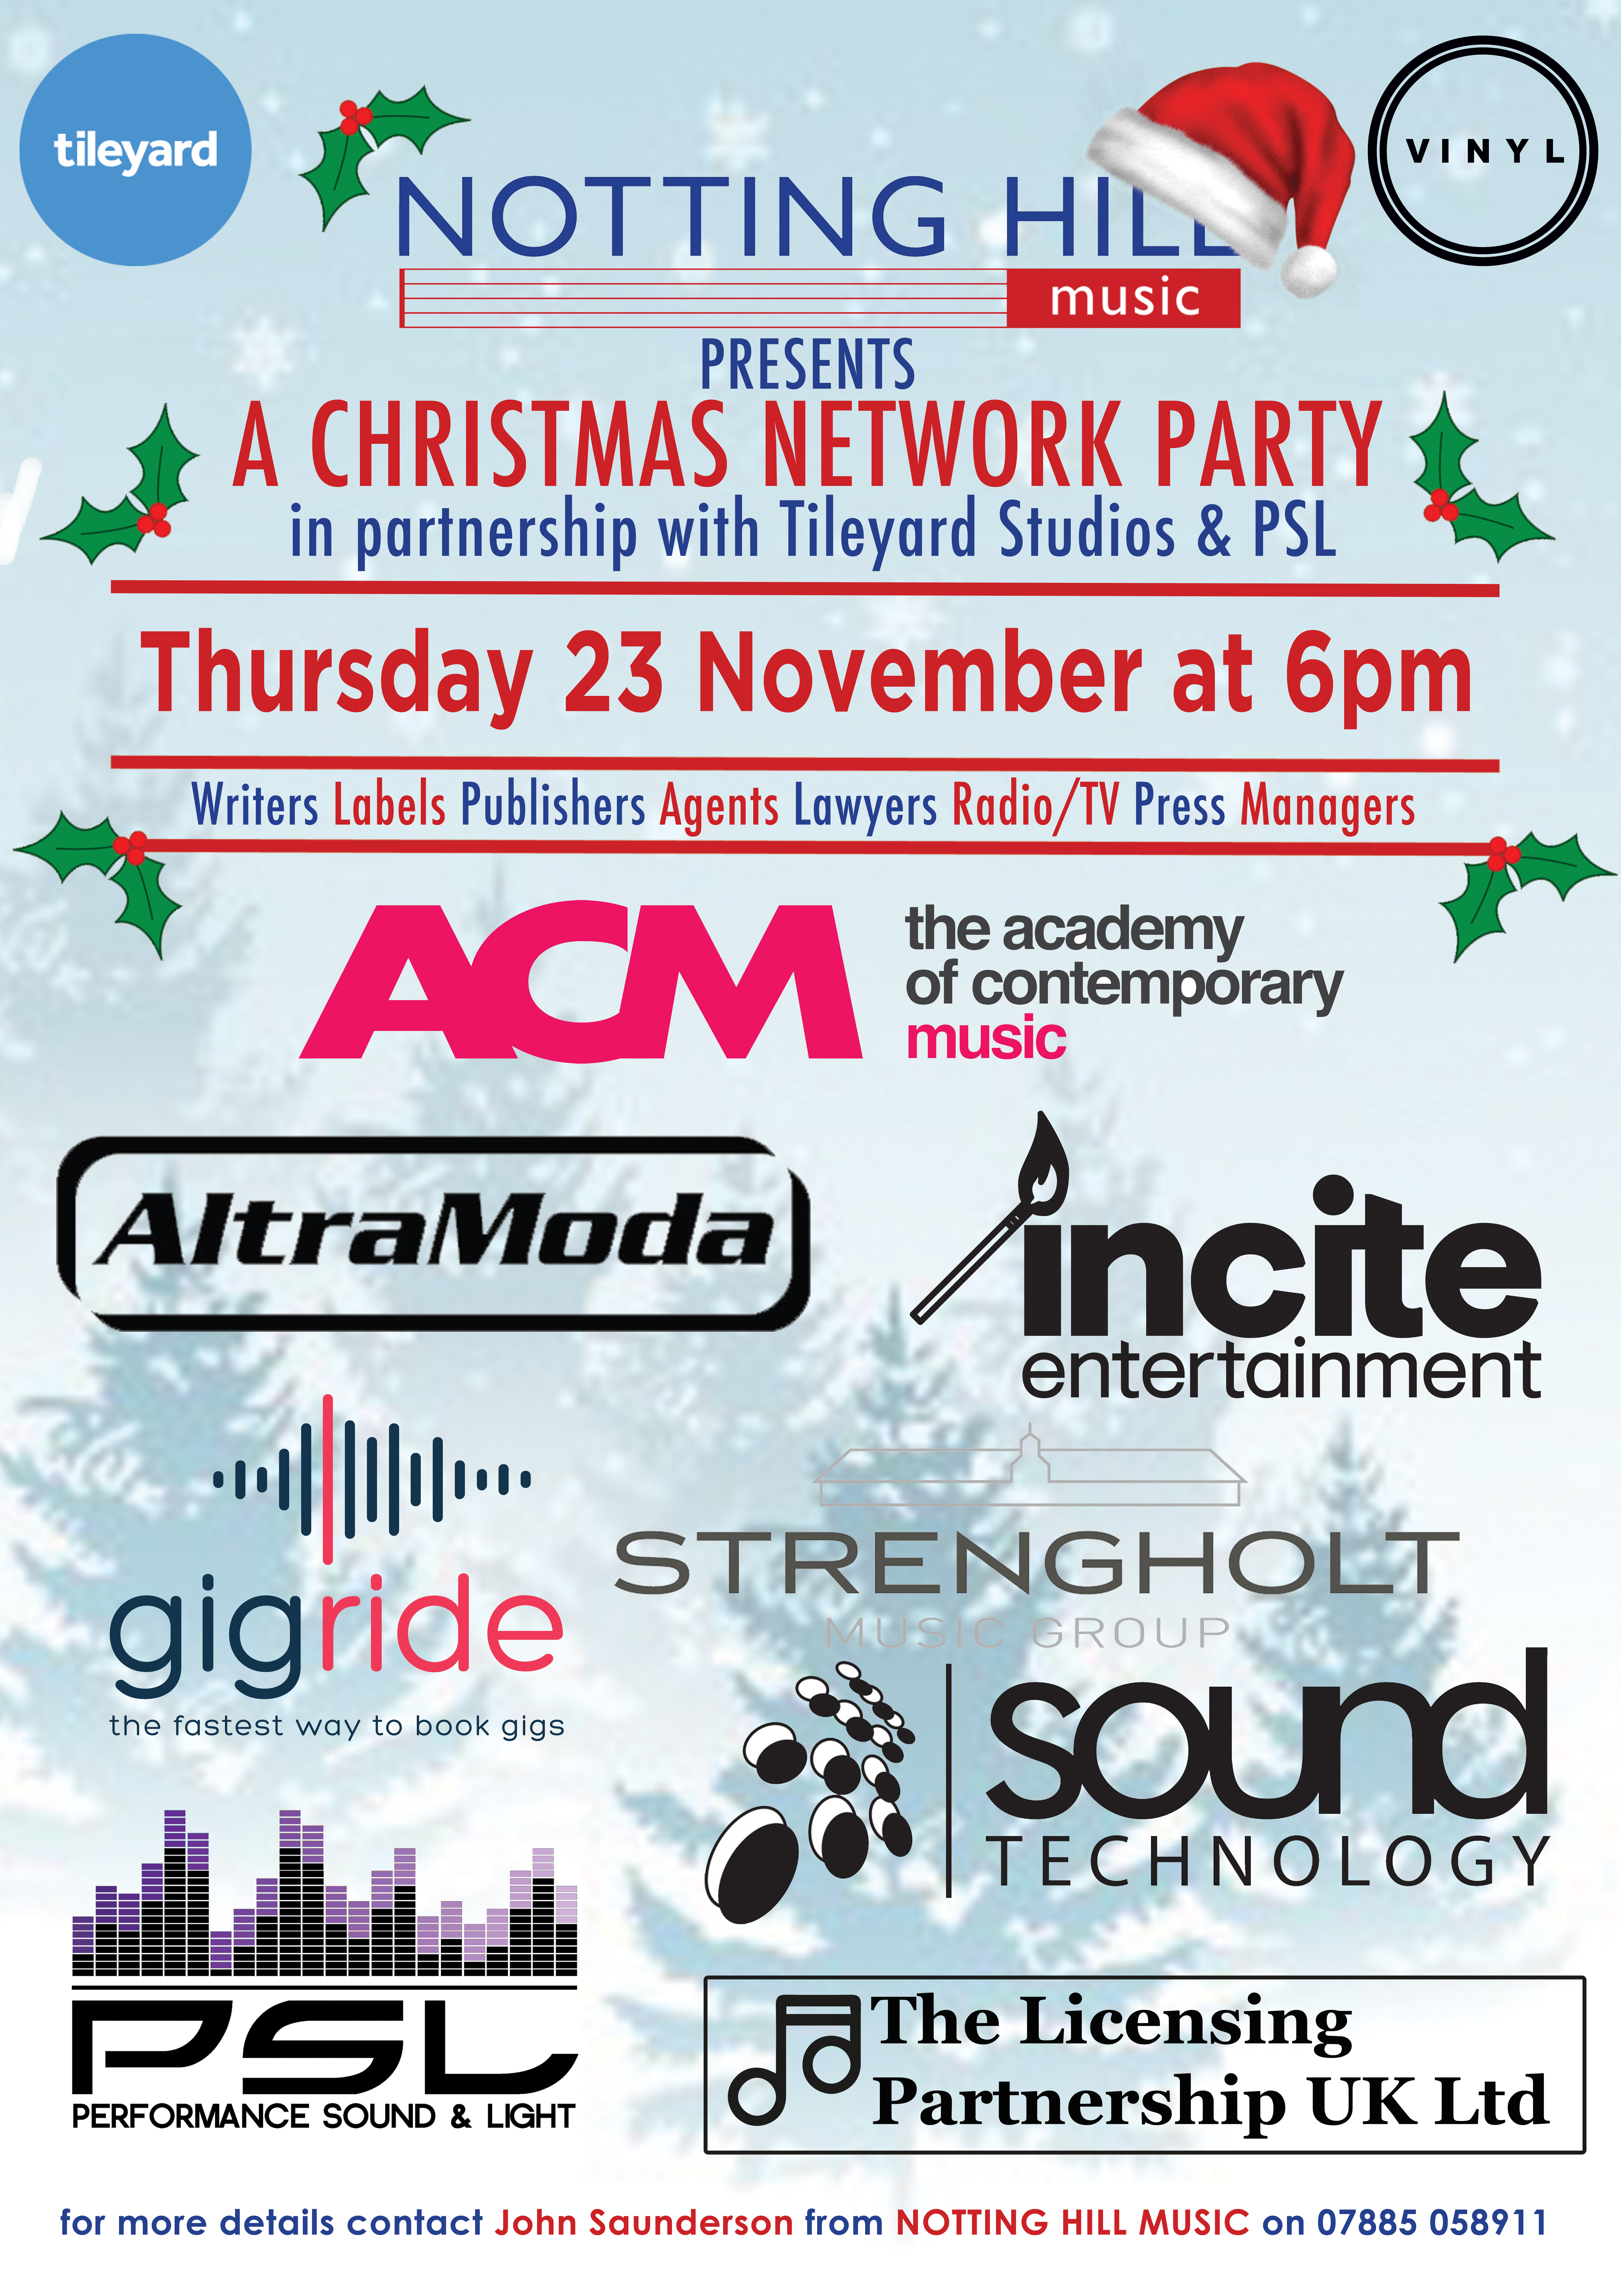 A Festive Networking Event on Thursday 23 November!